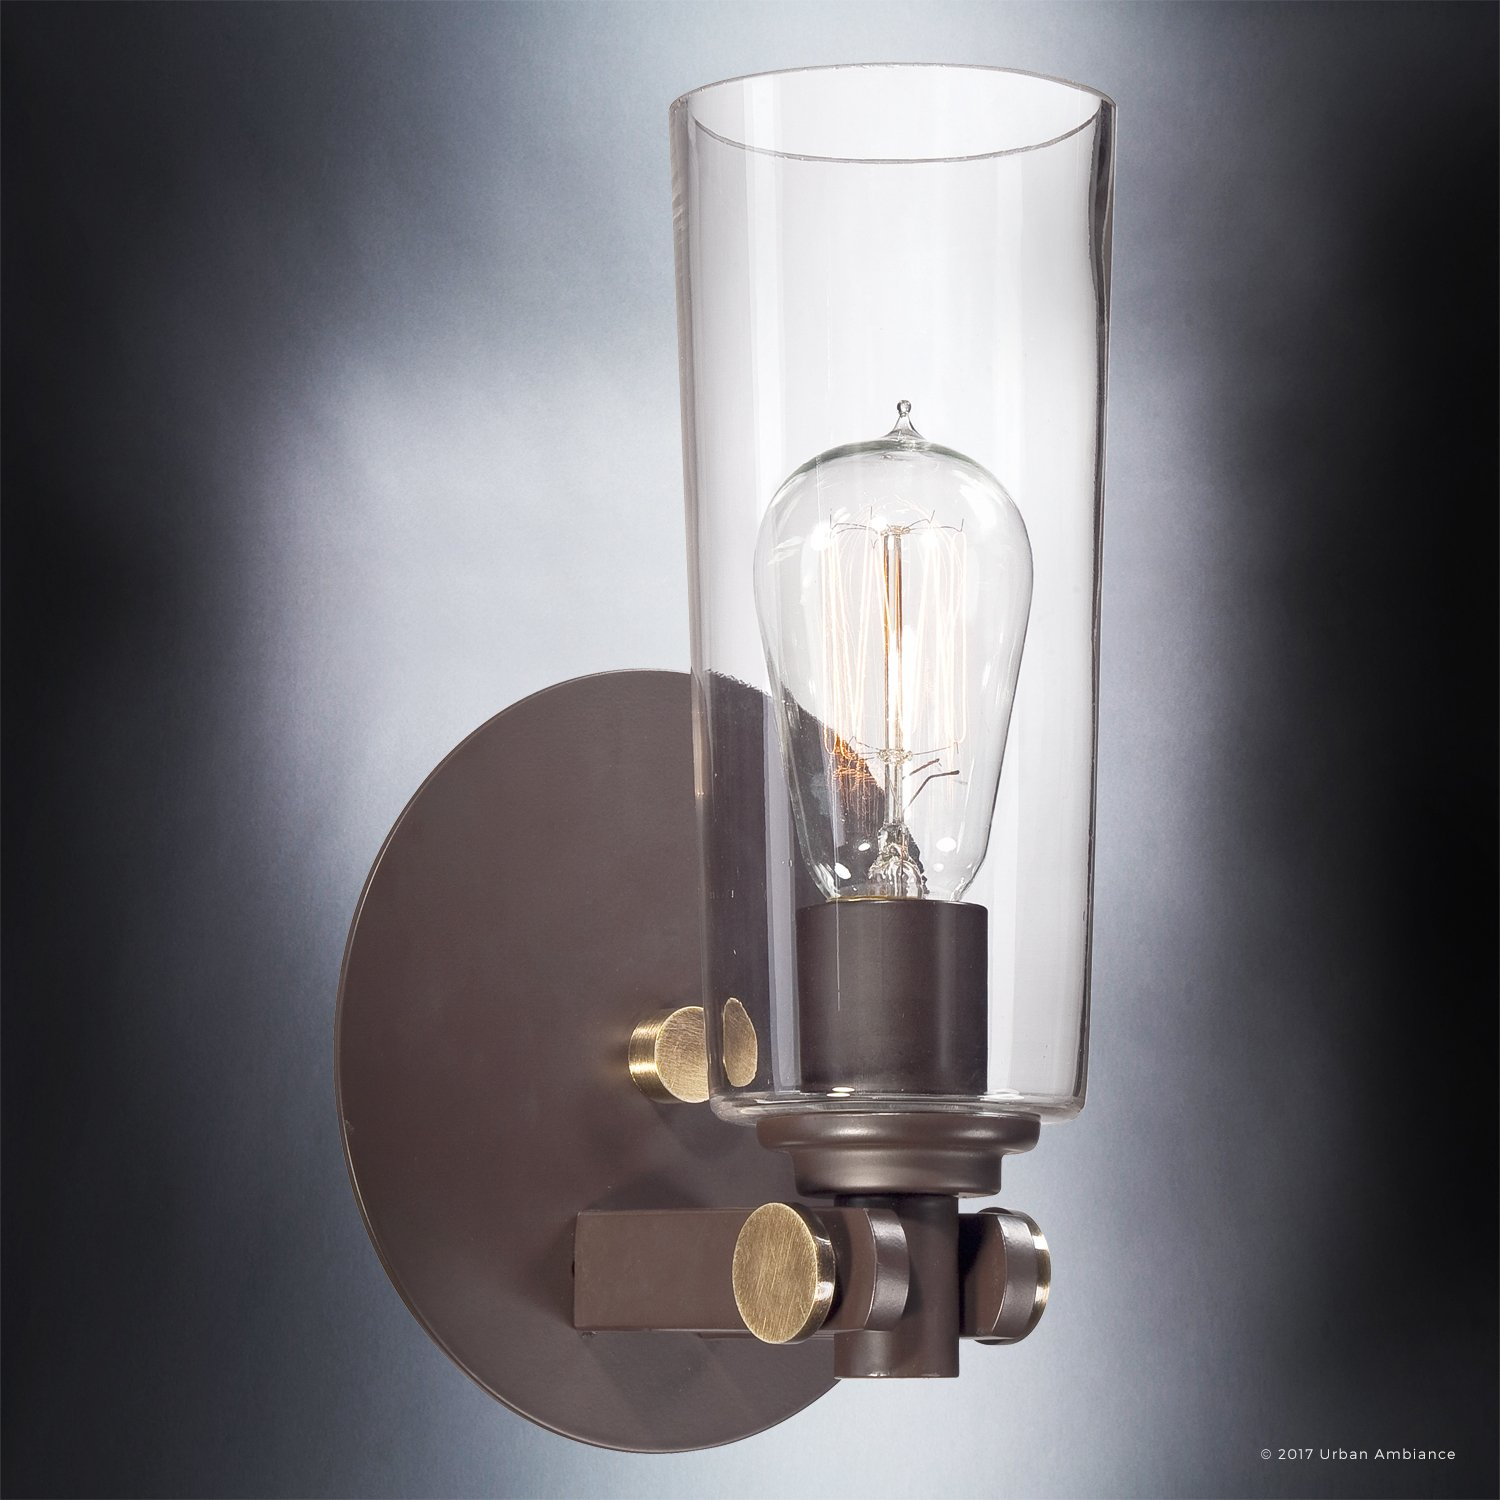 Luxury Vintage Indoor Wall Light, Small Size: 11''H x 6.5''W, with Casual Style Elements, Retro Design, Elegant Estate Bronze Finish and Clear Glass, Includes Edison Bulb, UQL2690 by Urban Ambiance by Urban Ambiance (Image #3)